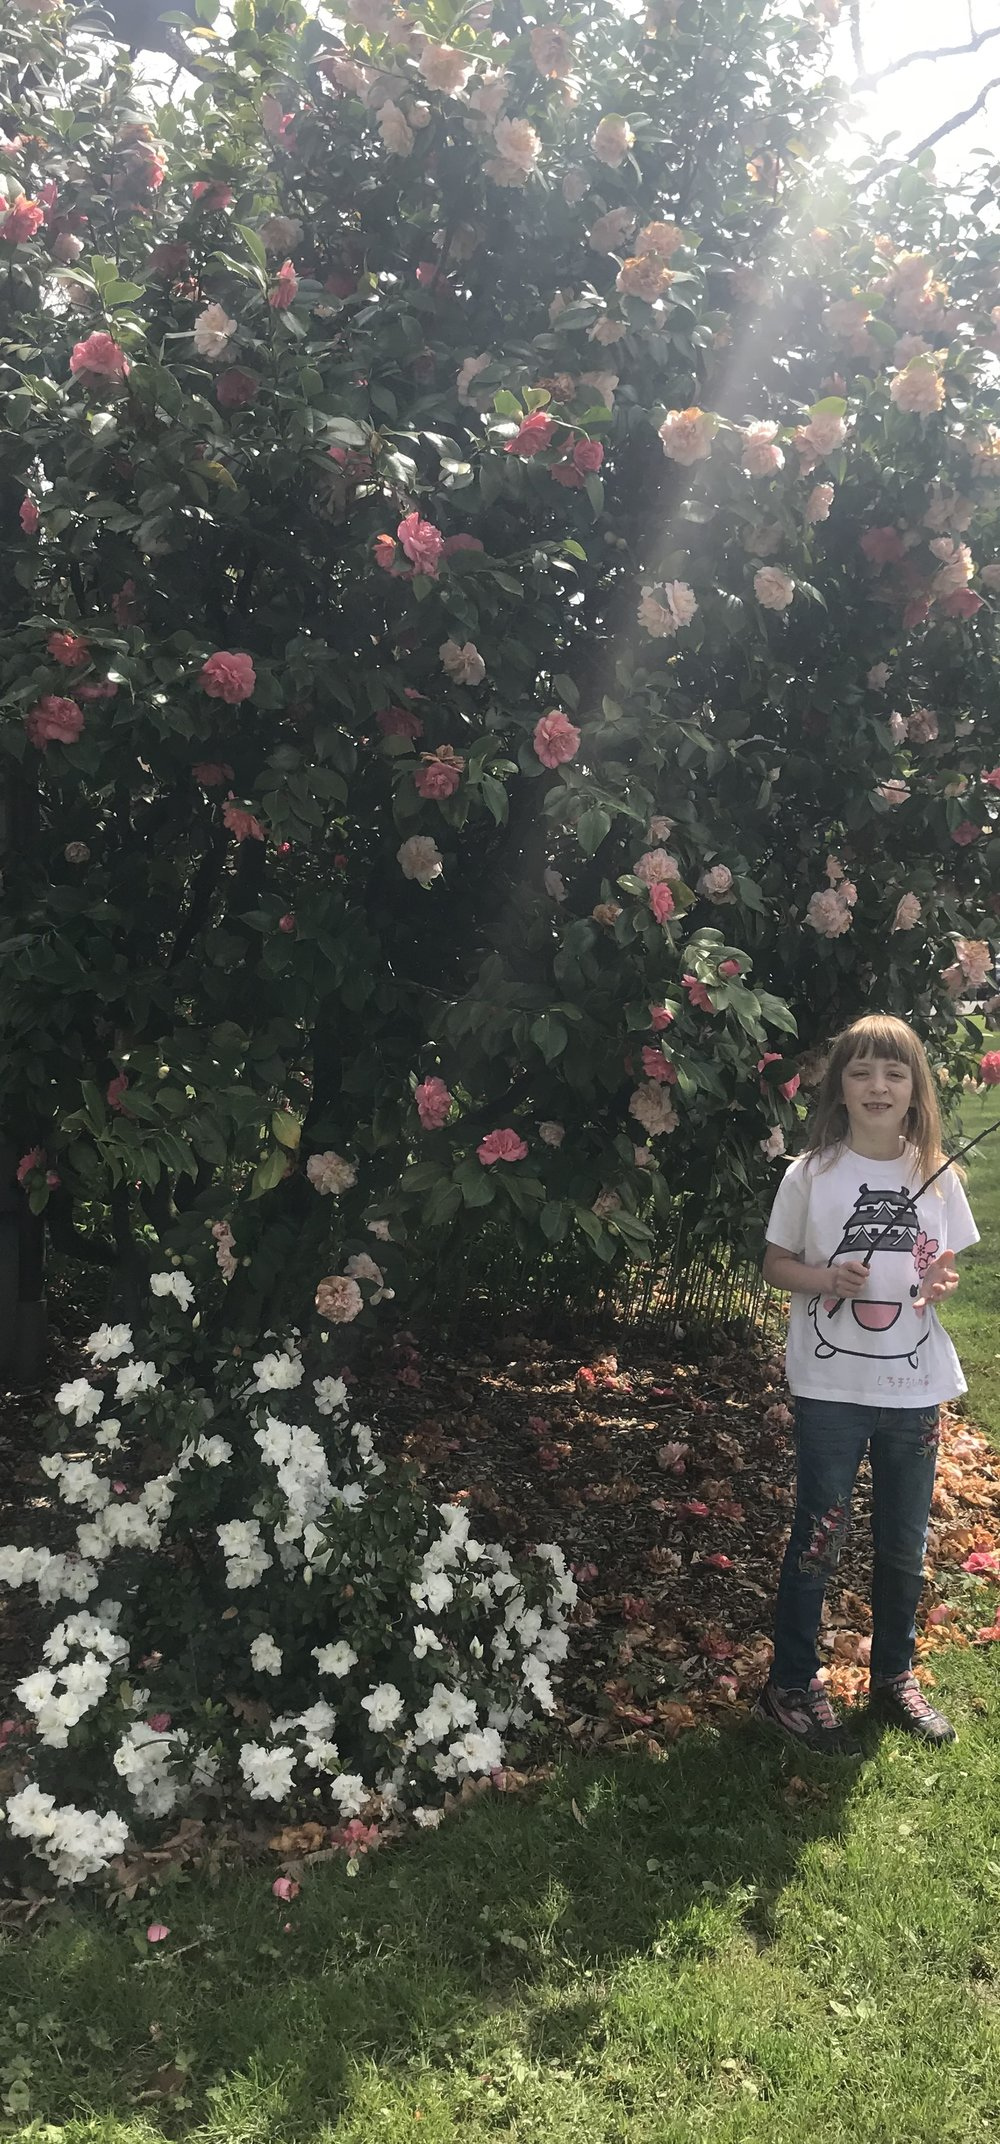 Ember and the roses. Photo courtesy of Gretchen Boyer.